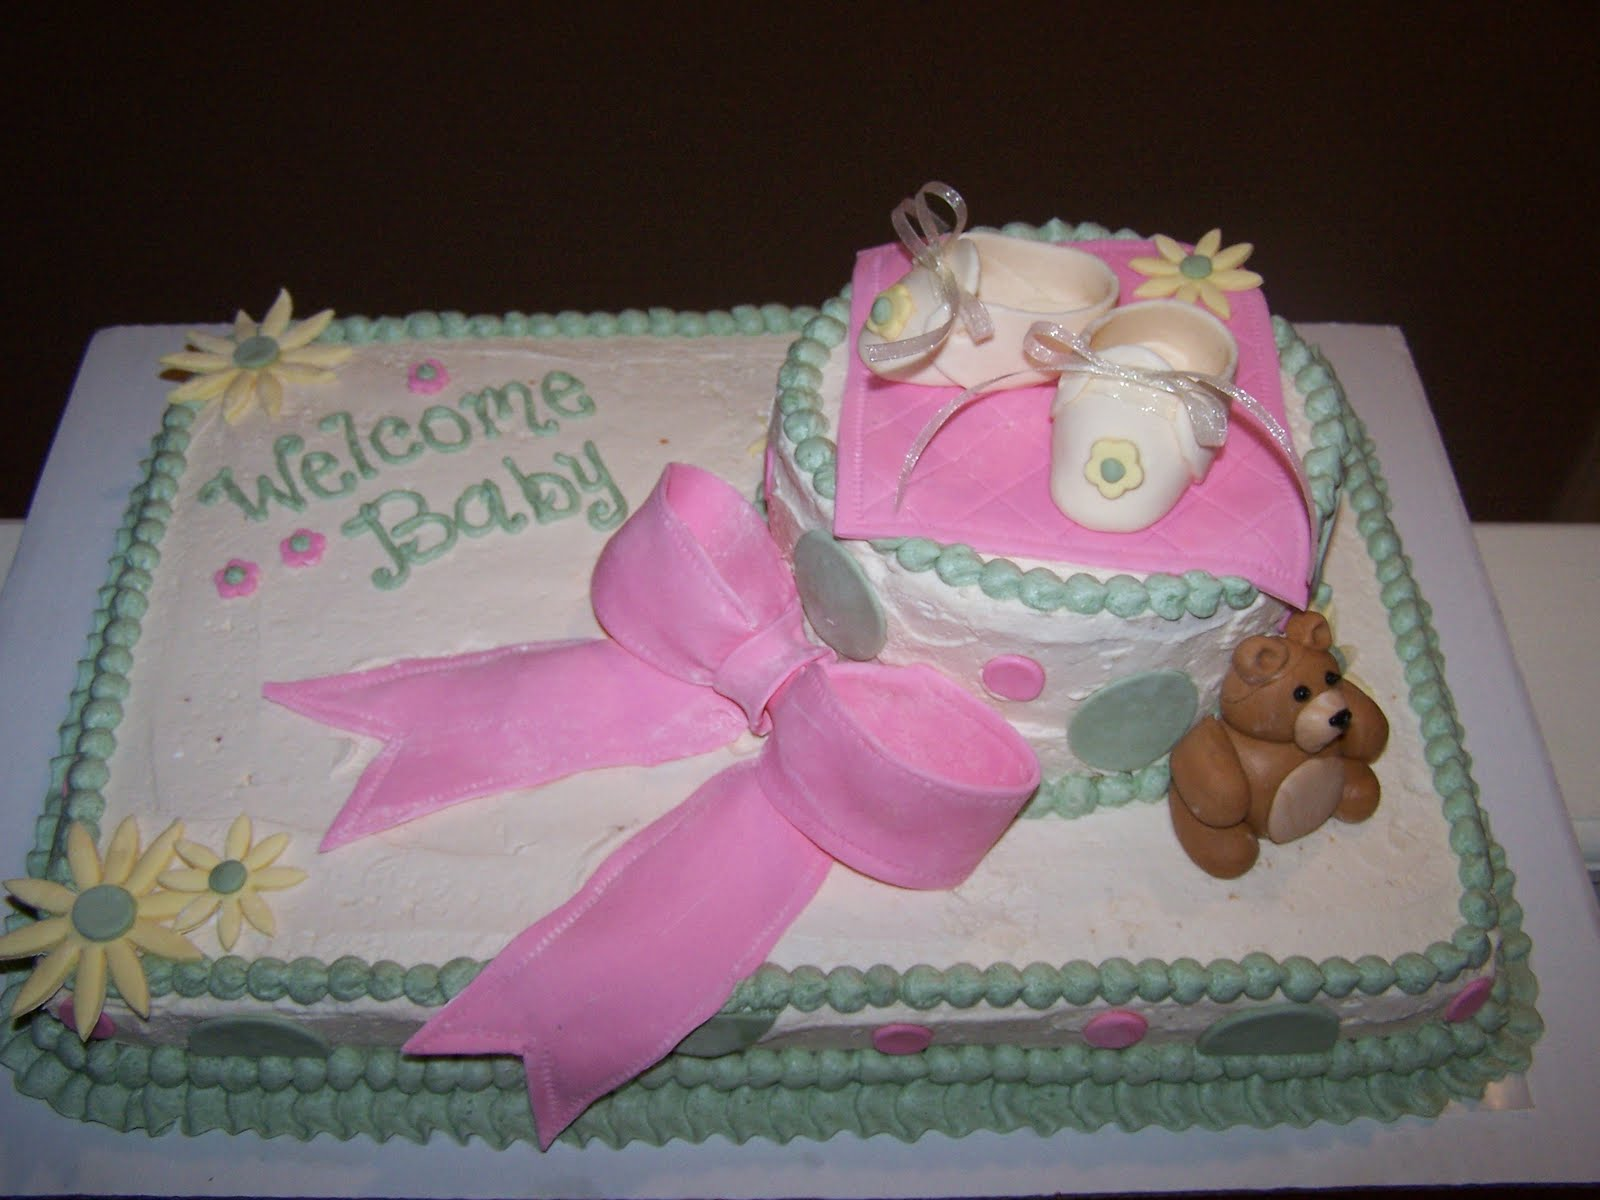 Living room decorating ideas baby shower sheet cake for Baby shower cake decoration ideas